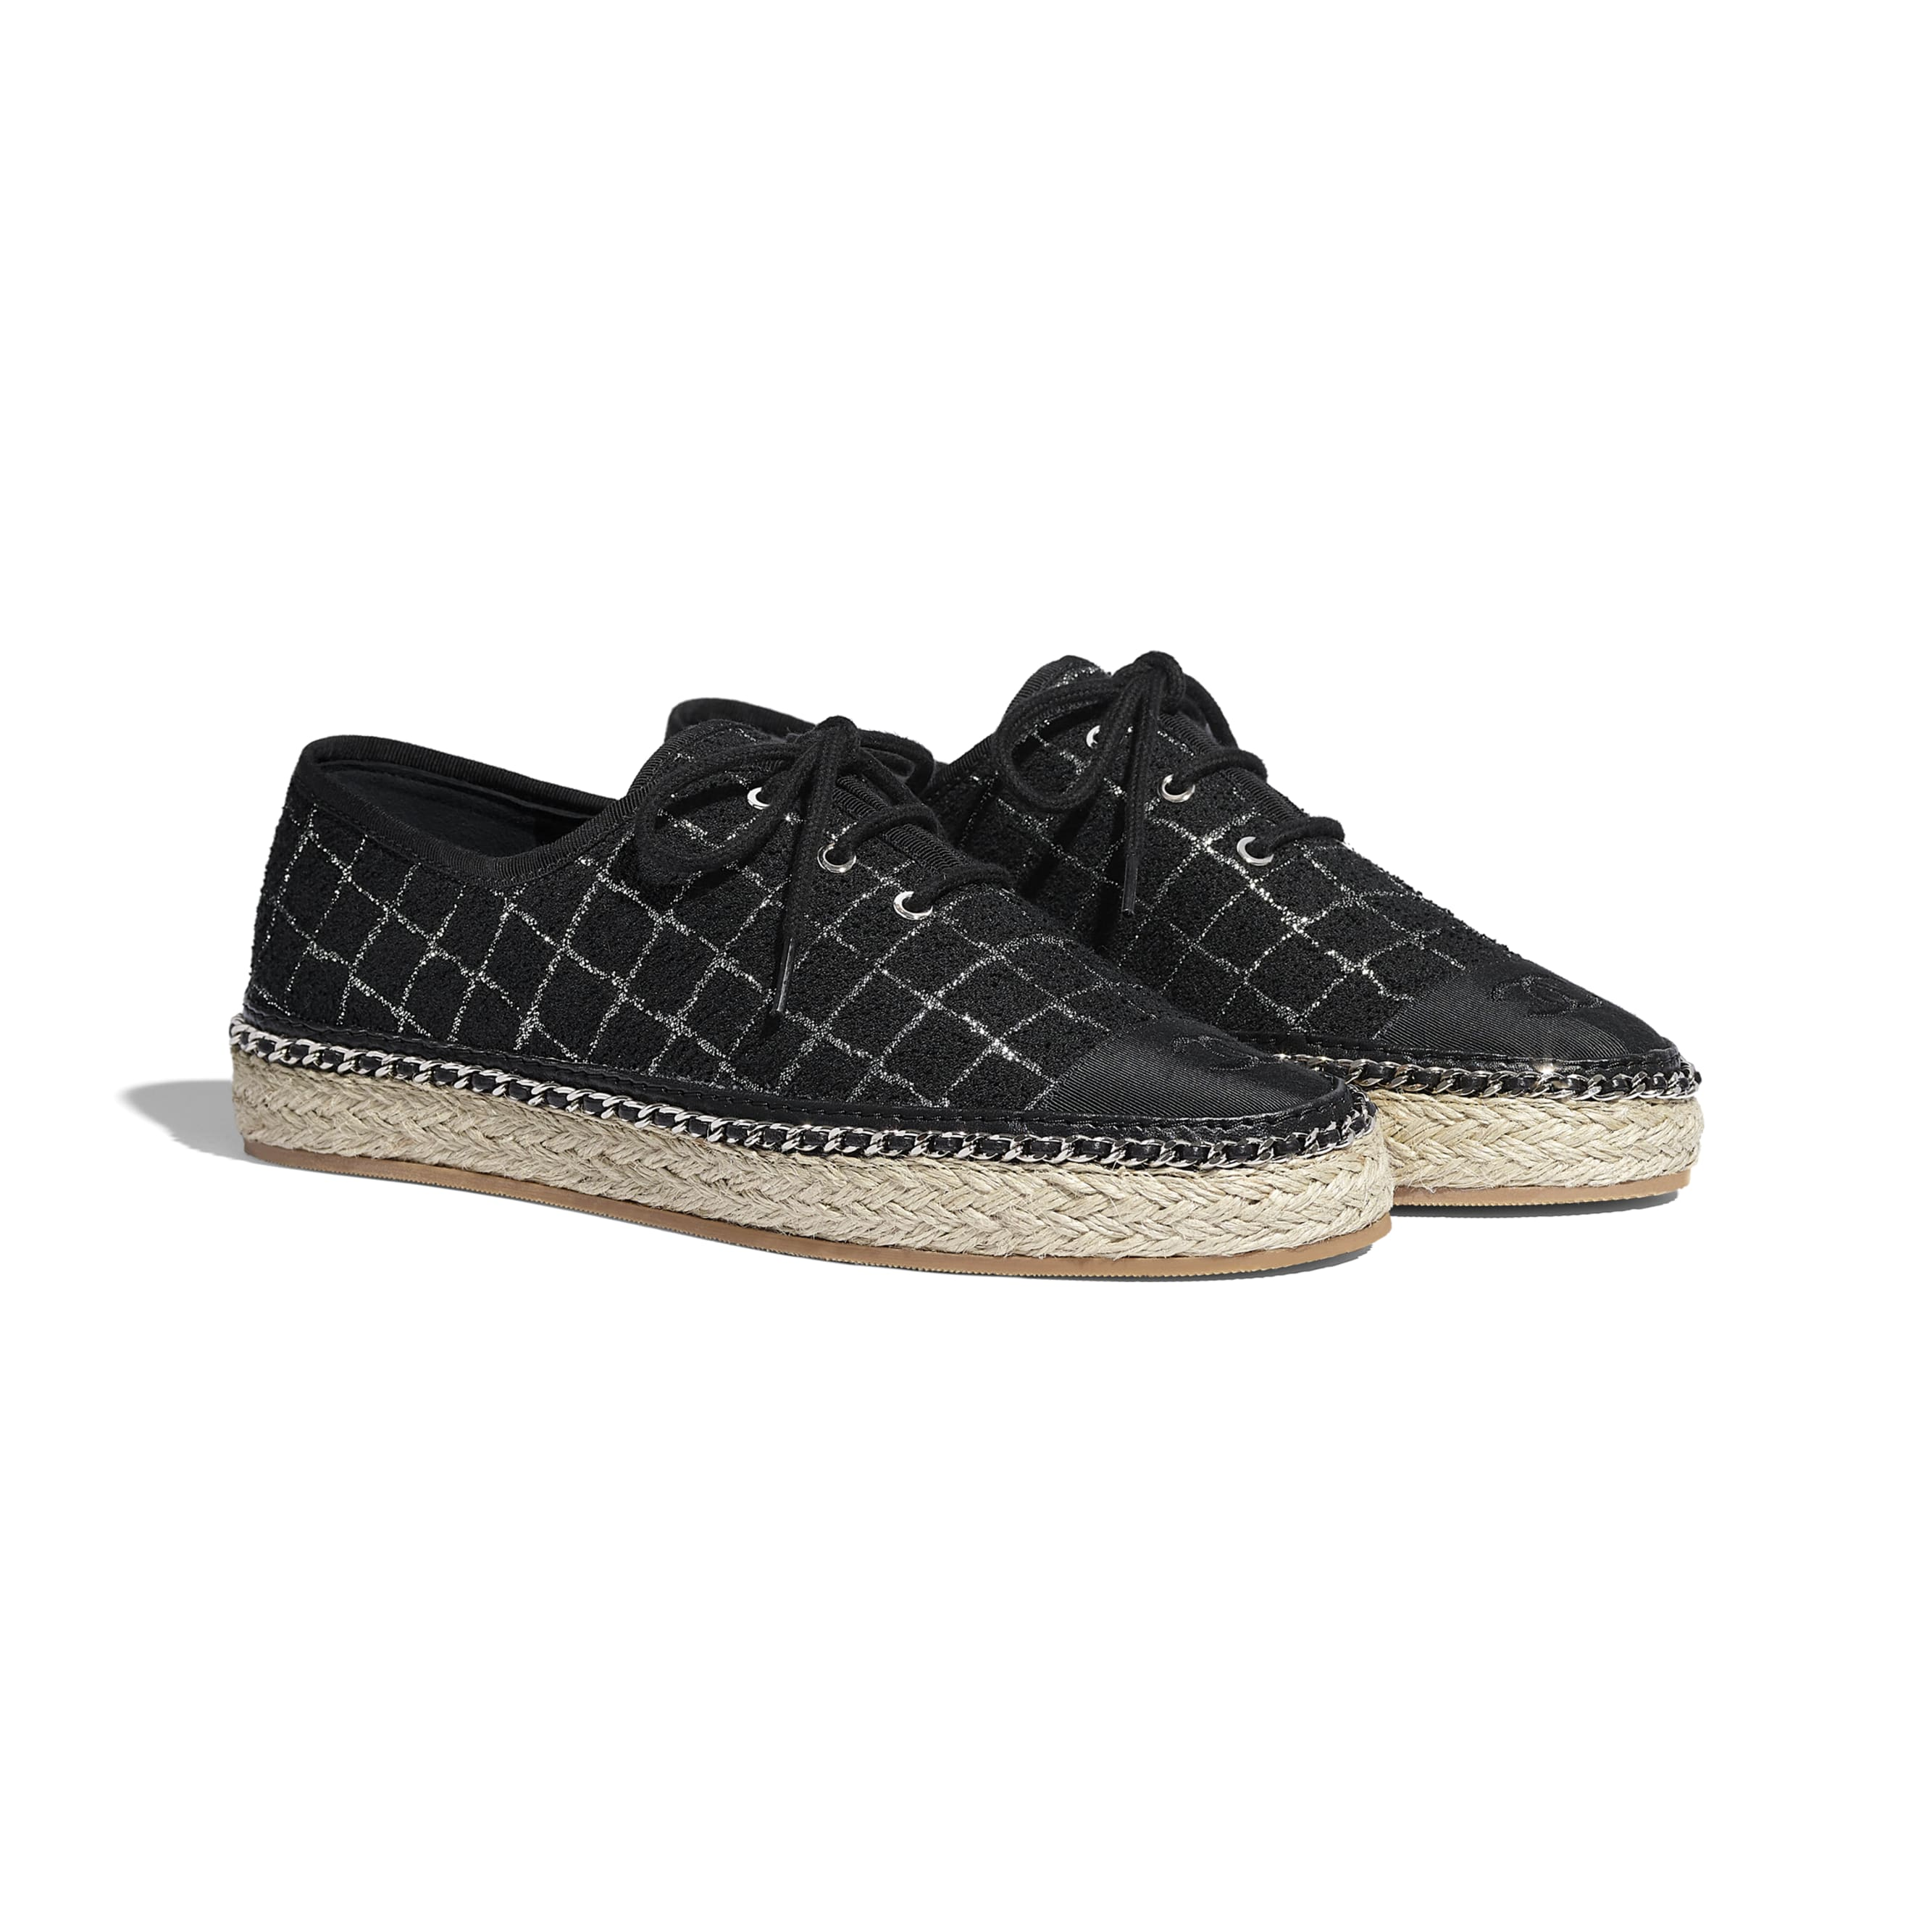 Lace-Ups - Black & Silver - Tweed & Grosgrain - CHANEL - Alternative view - see standard sized version